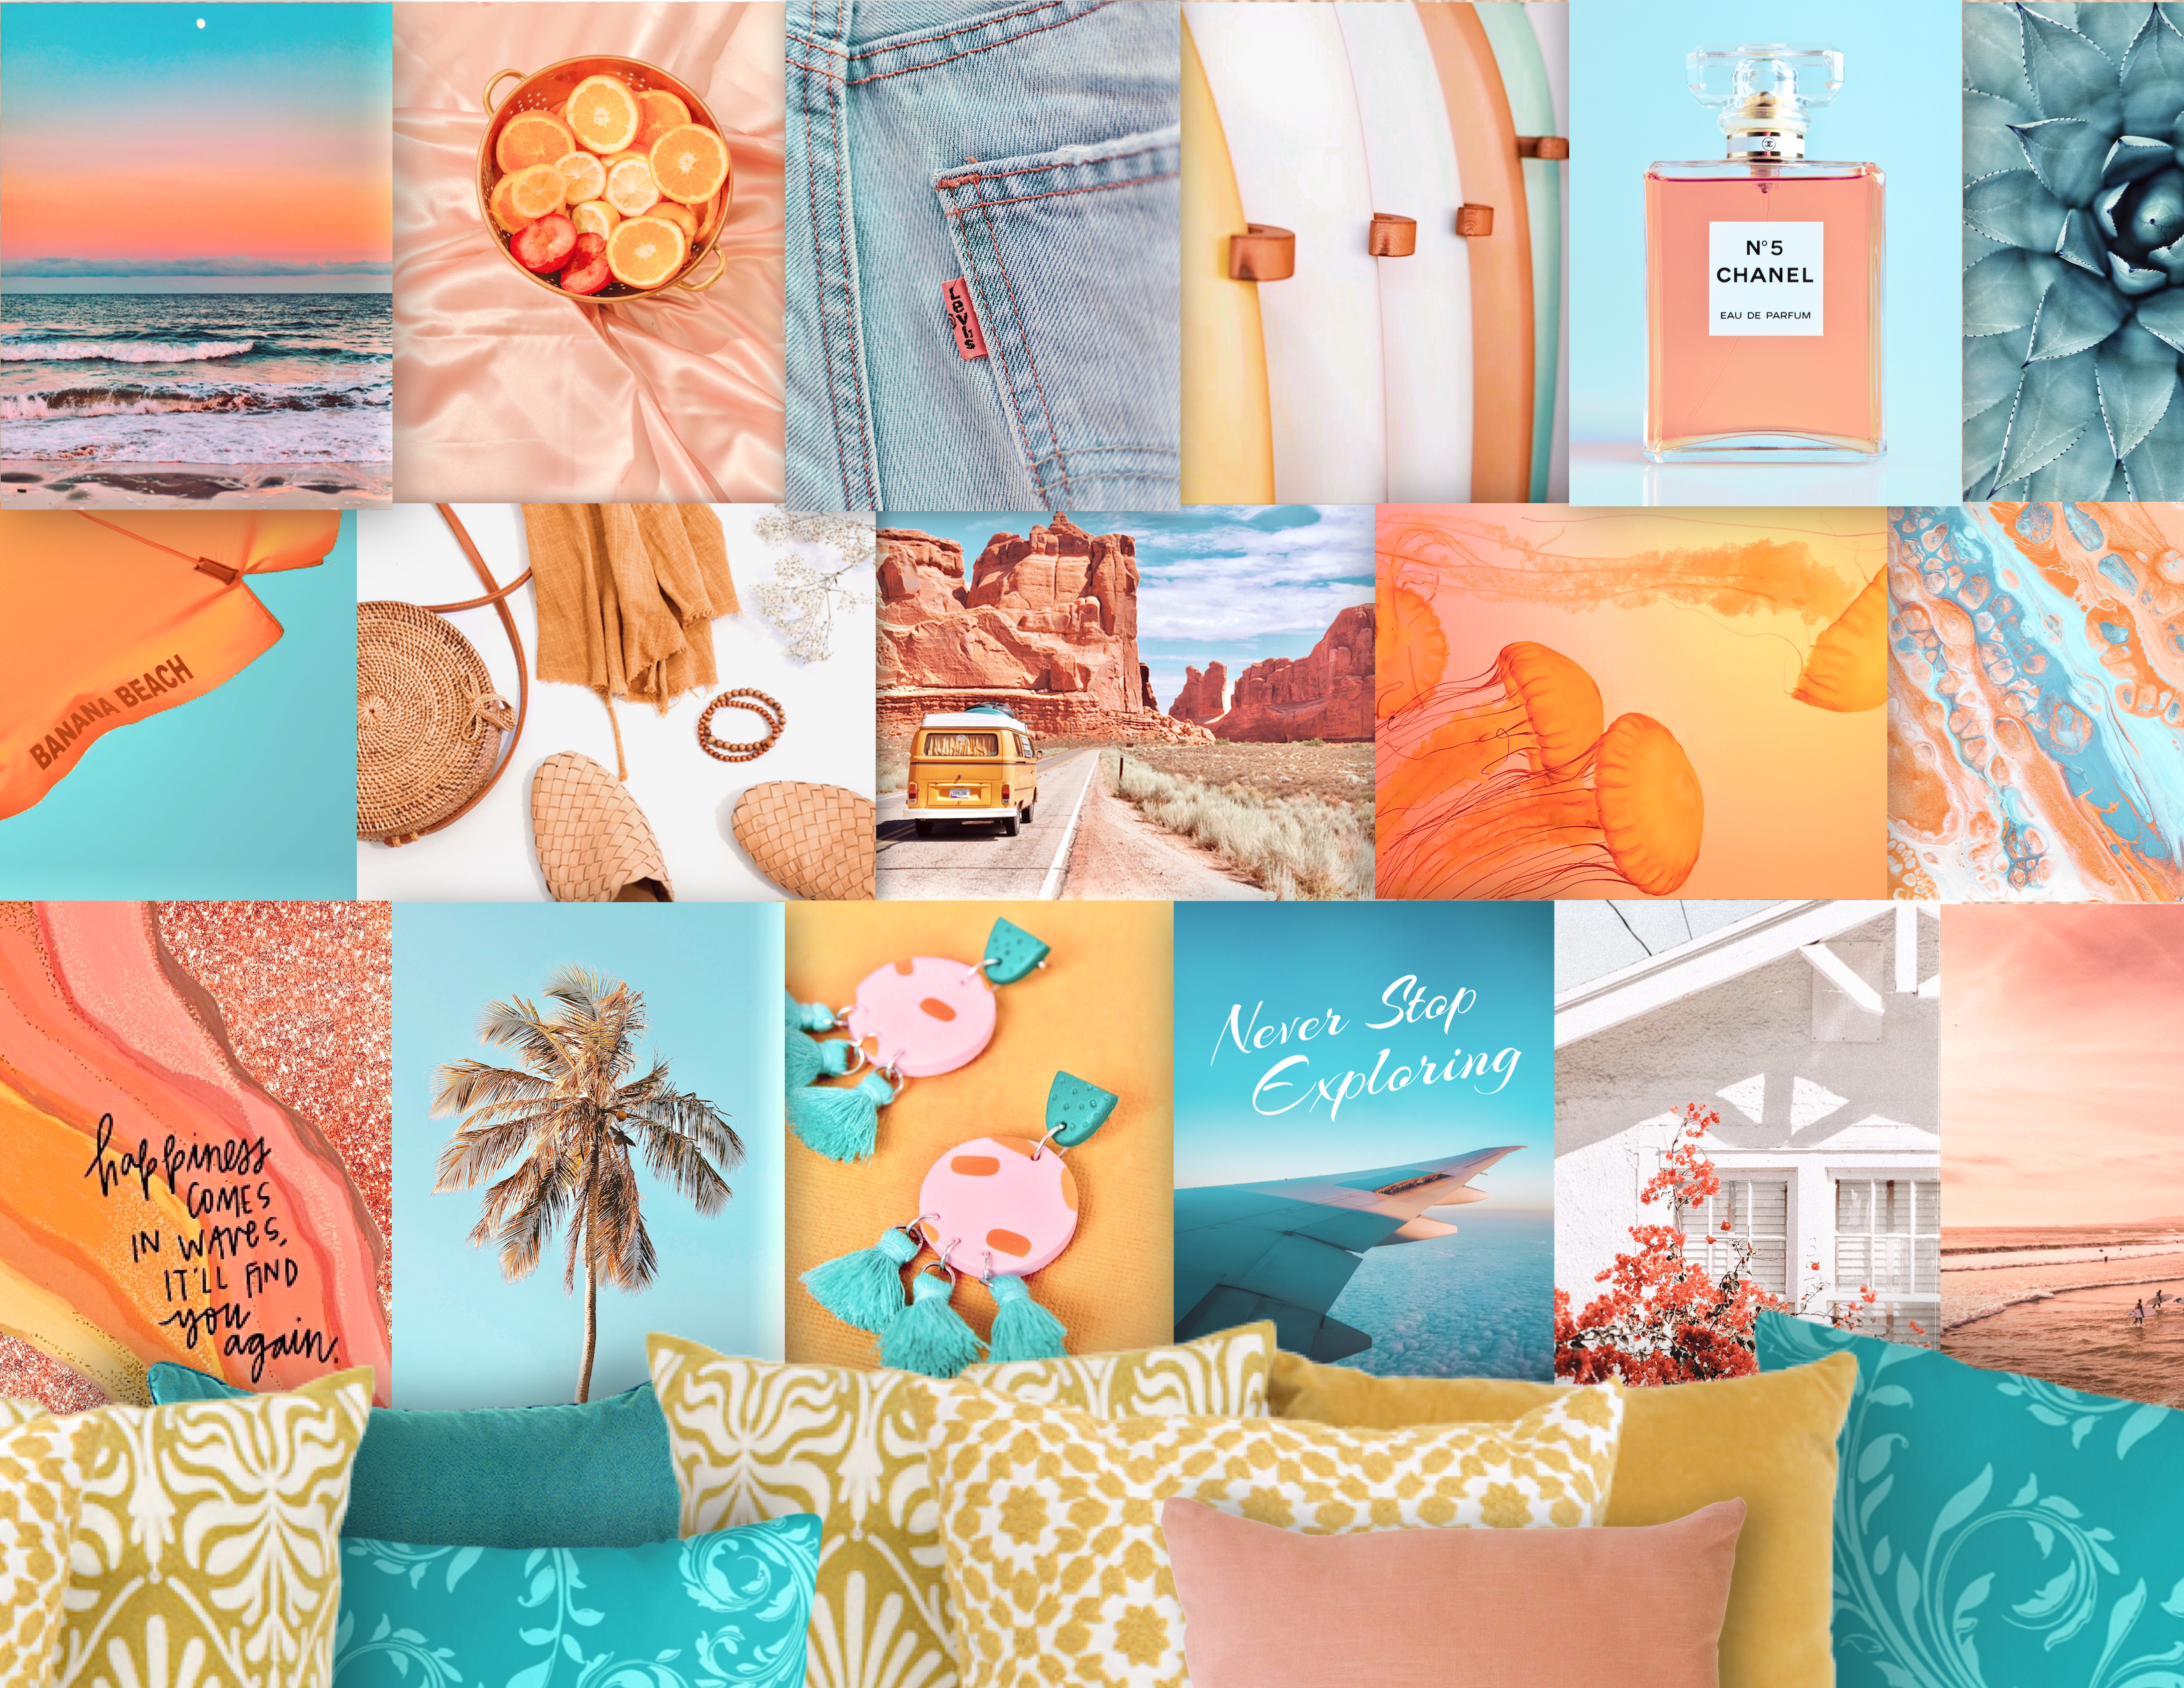 Tropical Desert Wall Collage Kit Vsco Image Collection The Etsy In 2020 Dorm Room Wall Art Pink Wall Art Room Wall Art